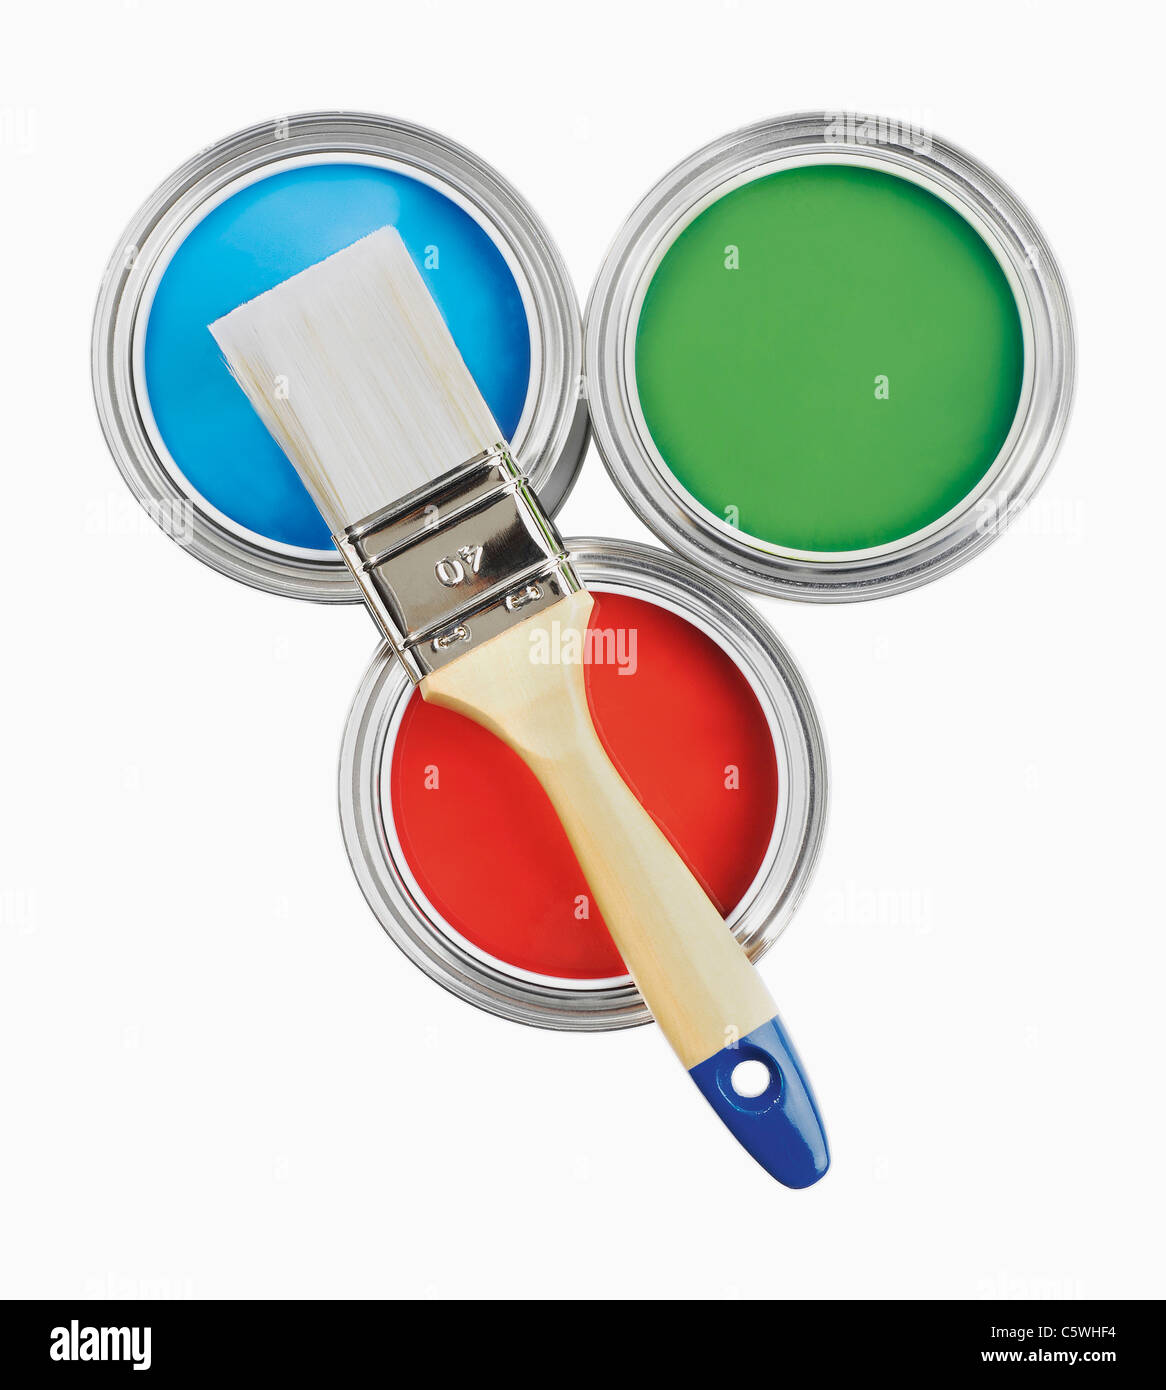 Three paint cans and paint brush on white background - Stock Image